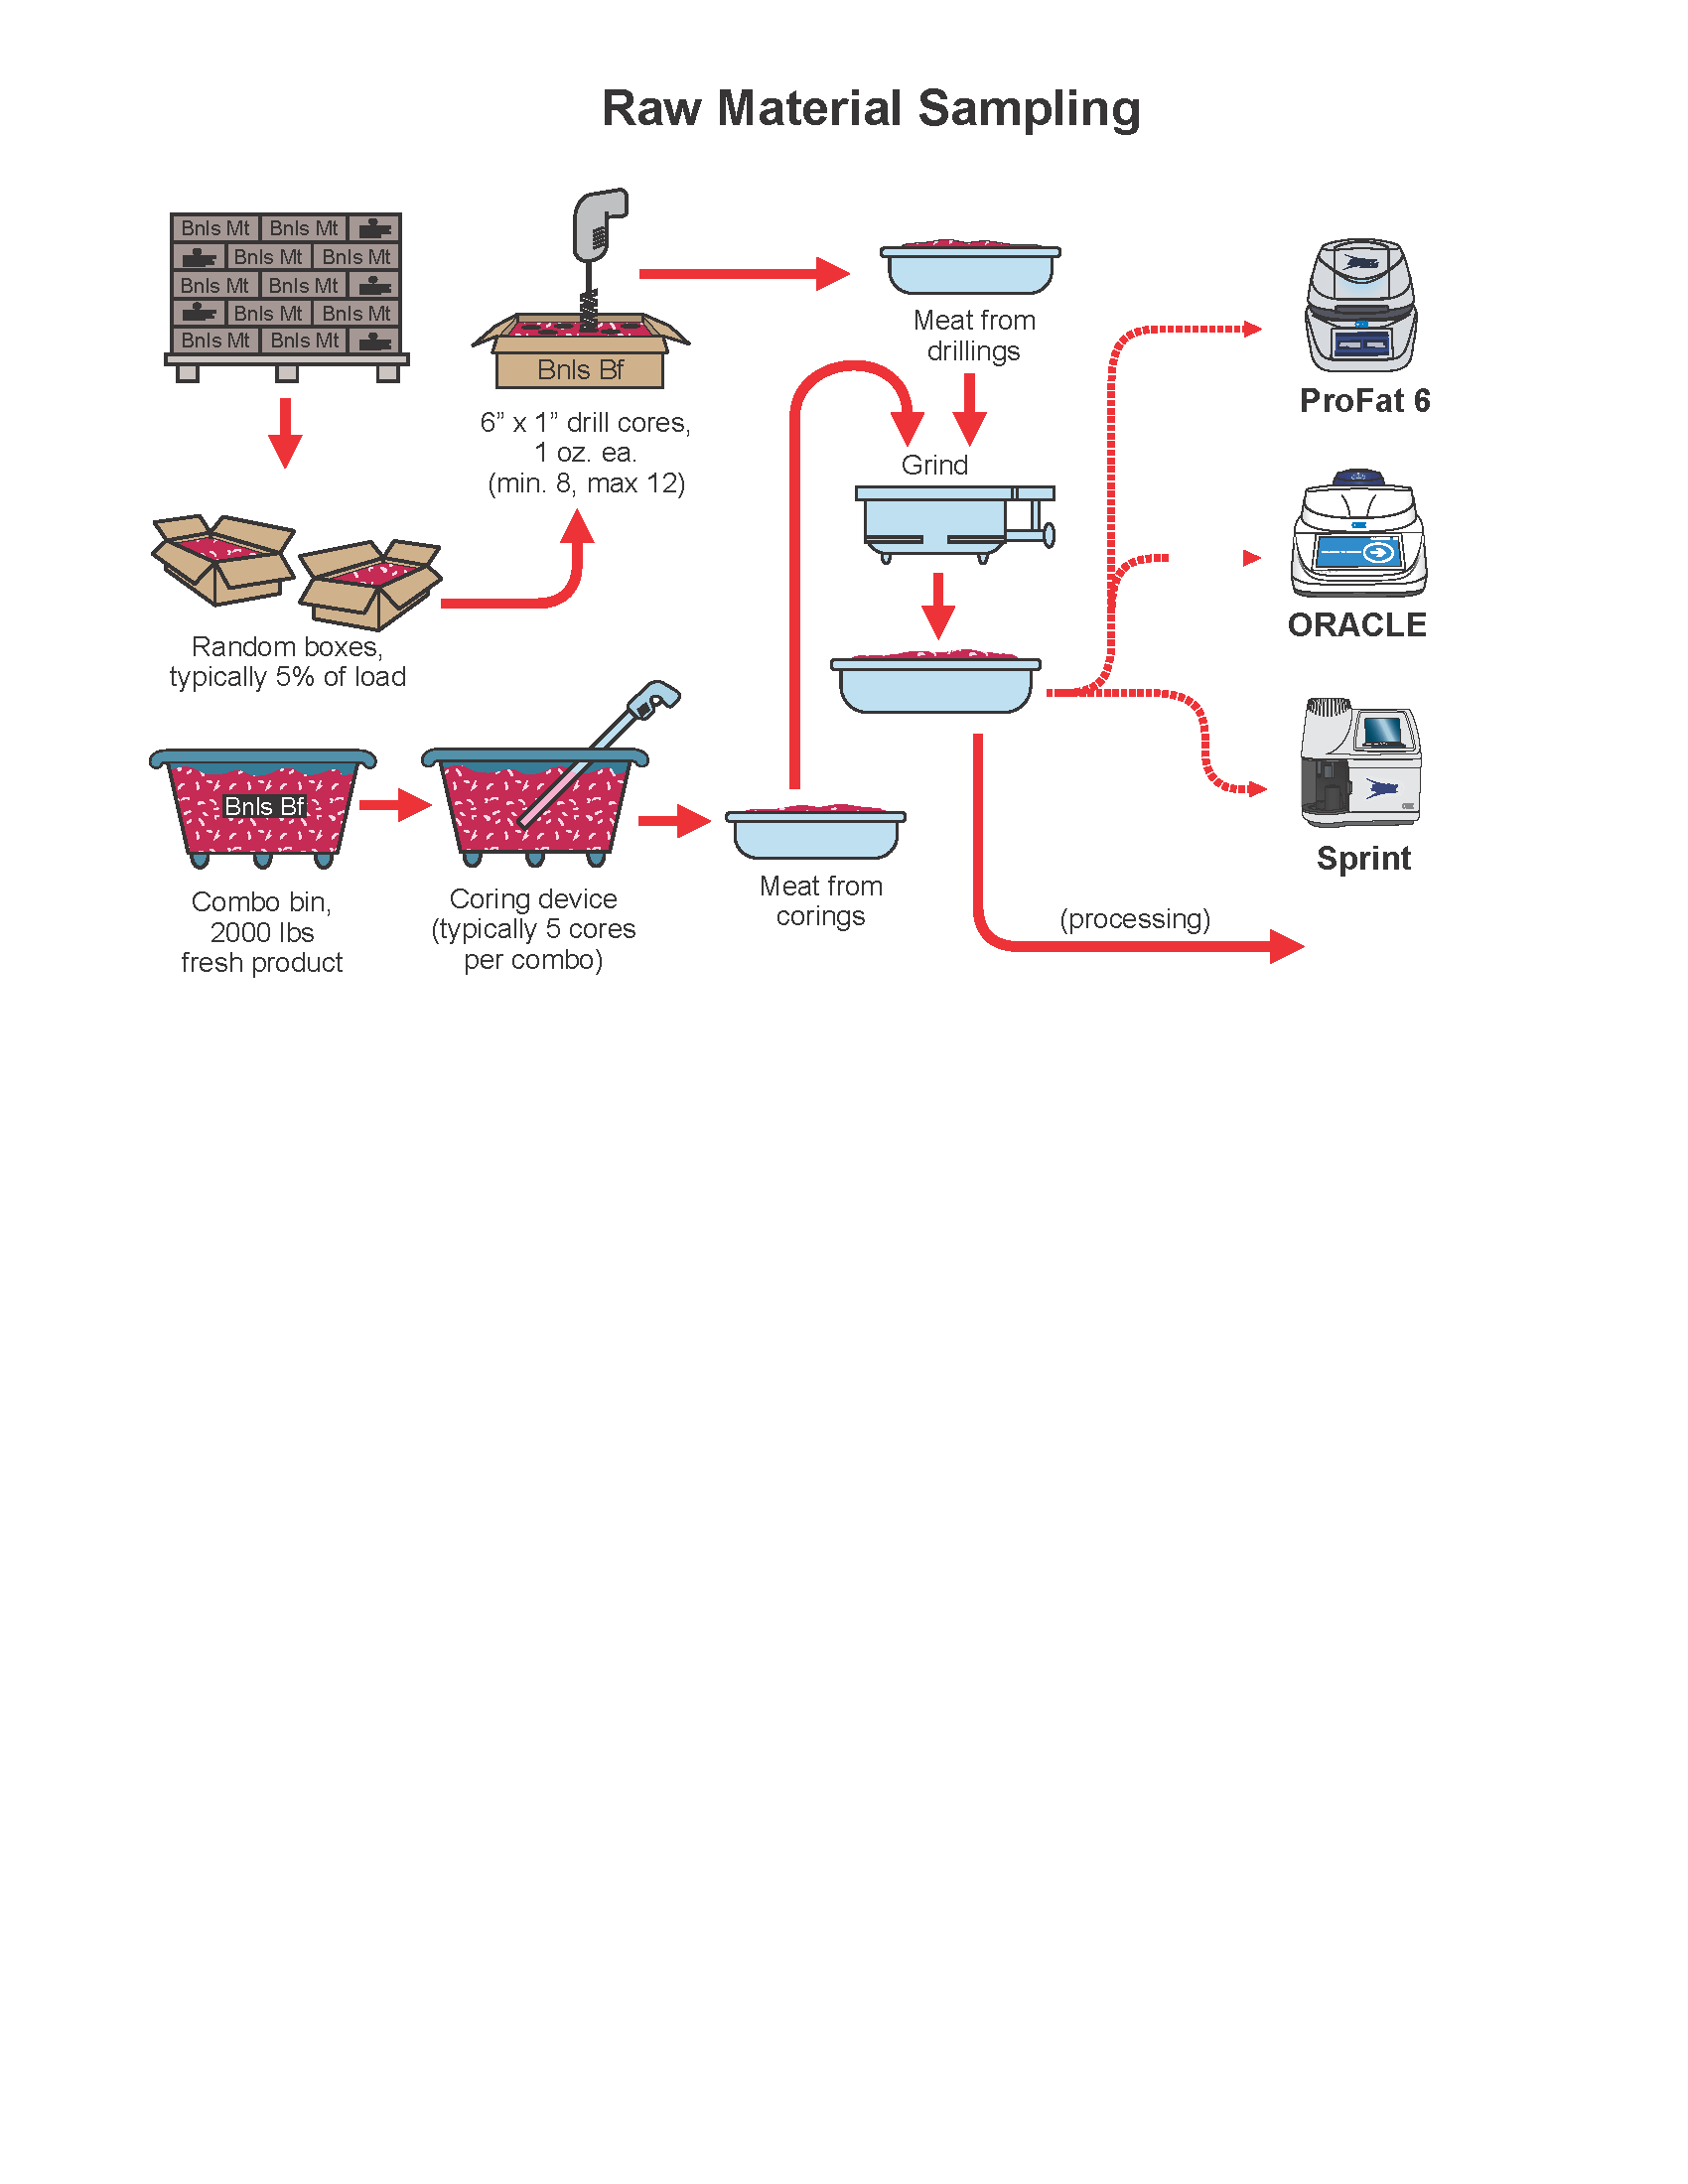 hight resolution of the raw material flow chart gives precise details on raw material sampling as well as an explanation of where cem process products can be implemented to